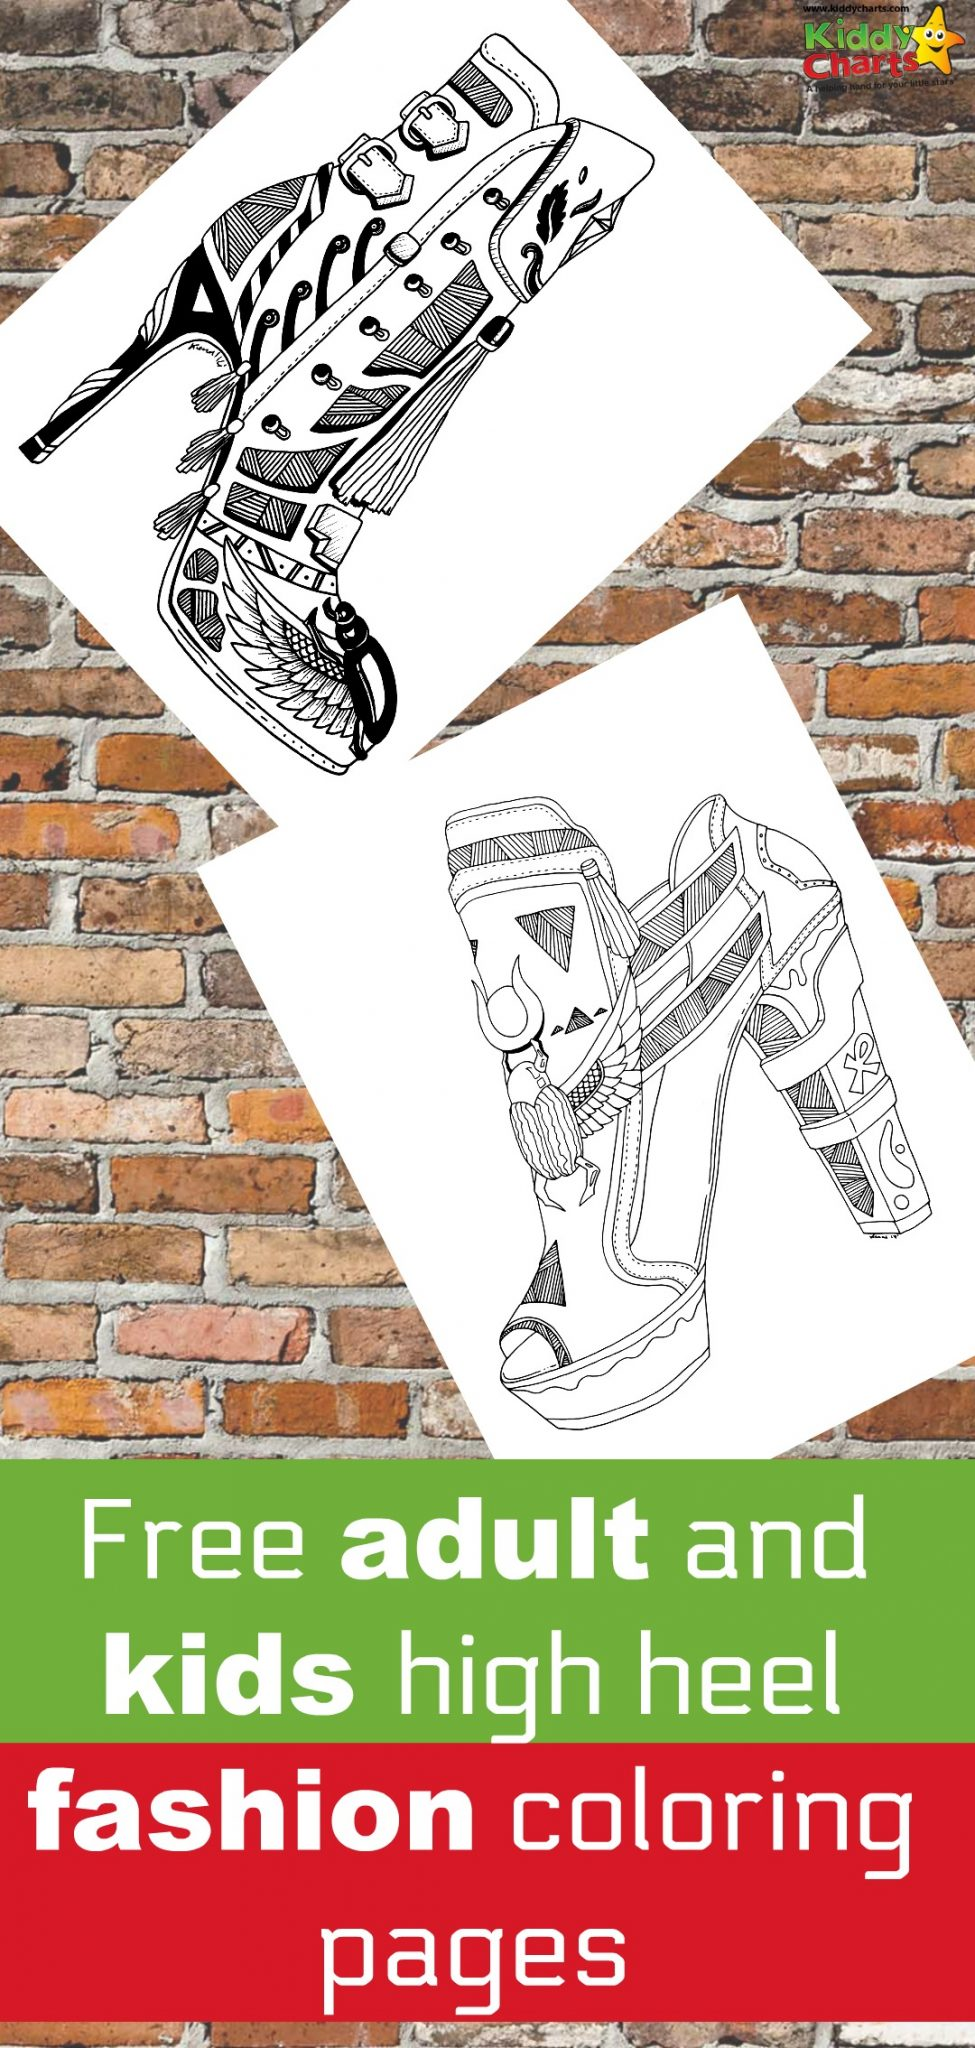 Download some fabulous free high heel shoe coloring pages to take you back to the 70s!